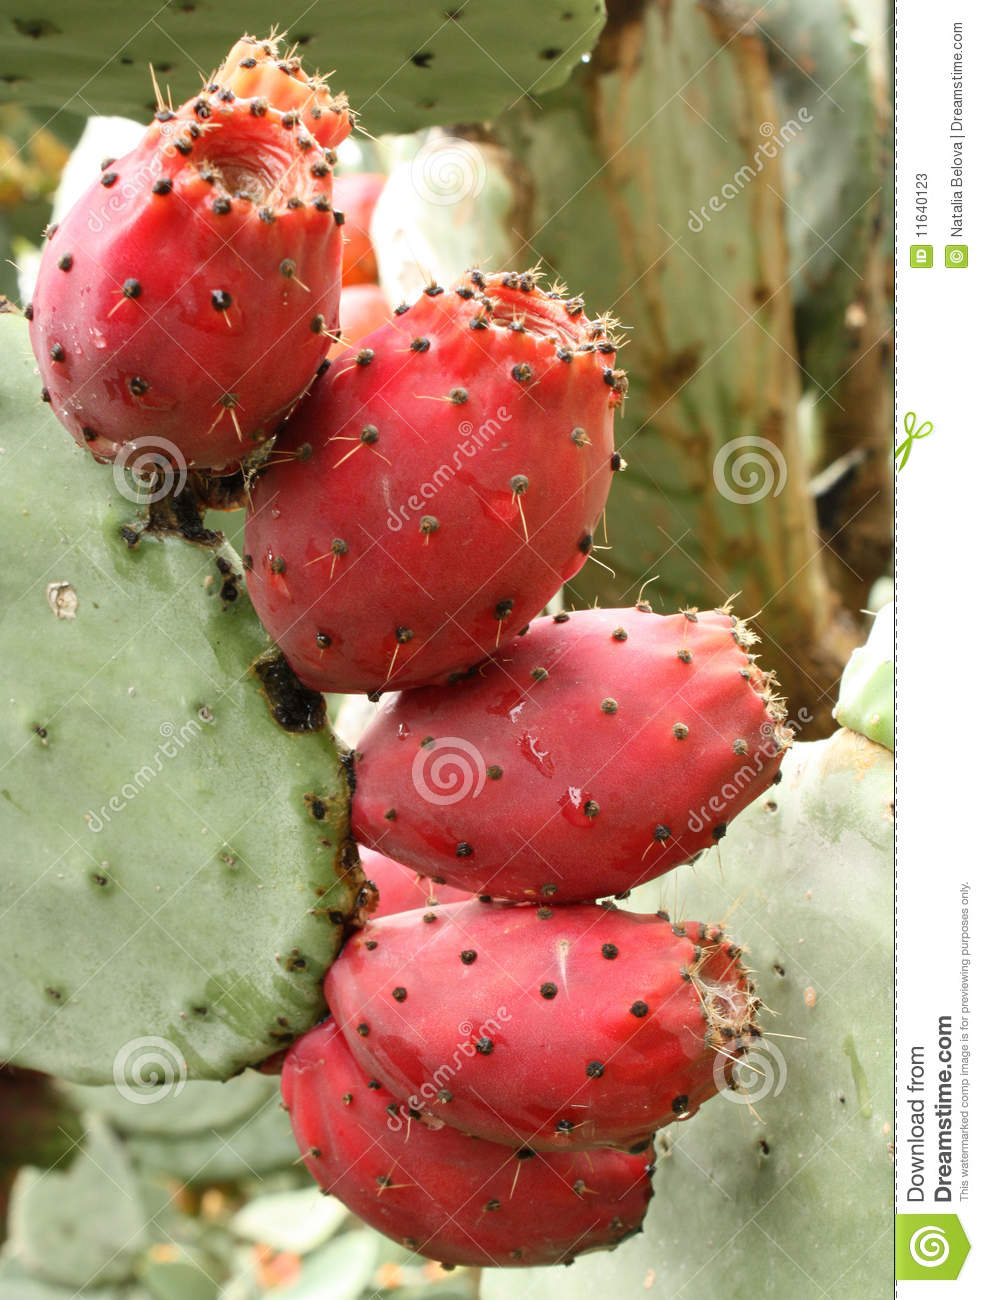 how to cook cactus fruit